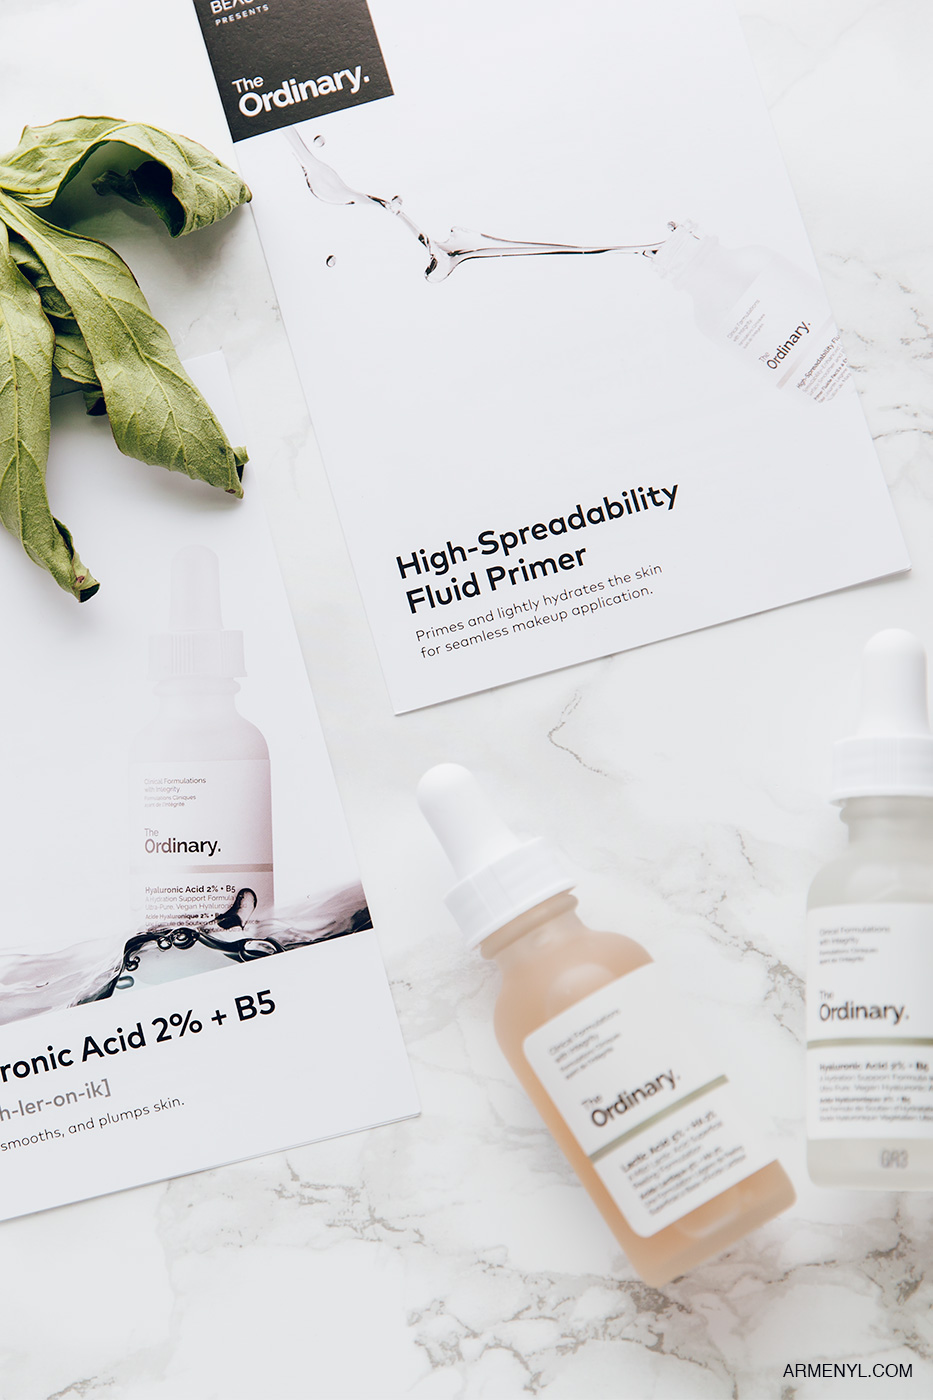 The Ordinary Skincare Beauty Product Review & content creation by Armenyl